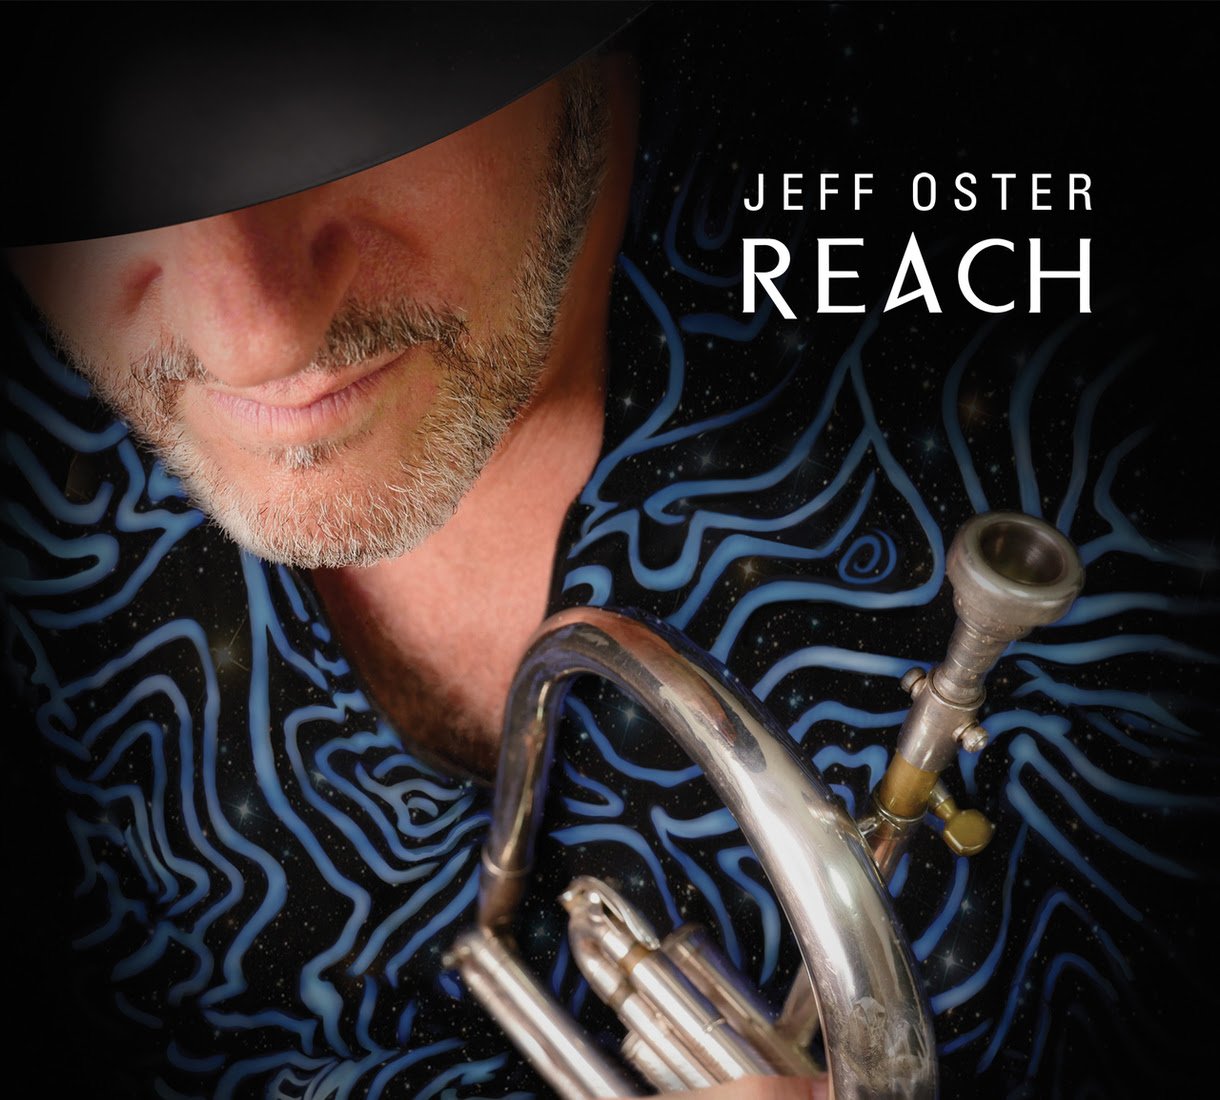 REACH - The New Jeff Oster Album